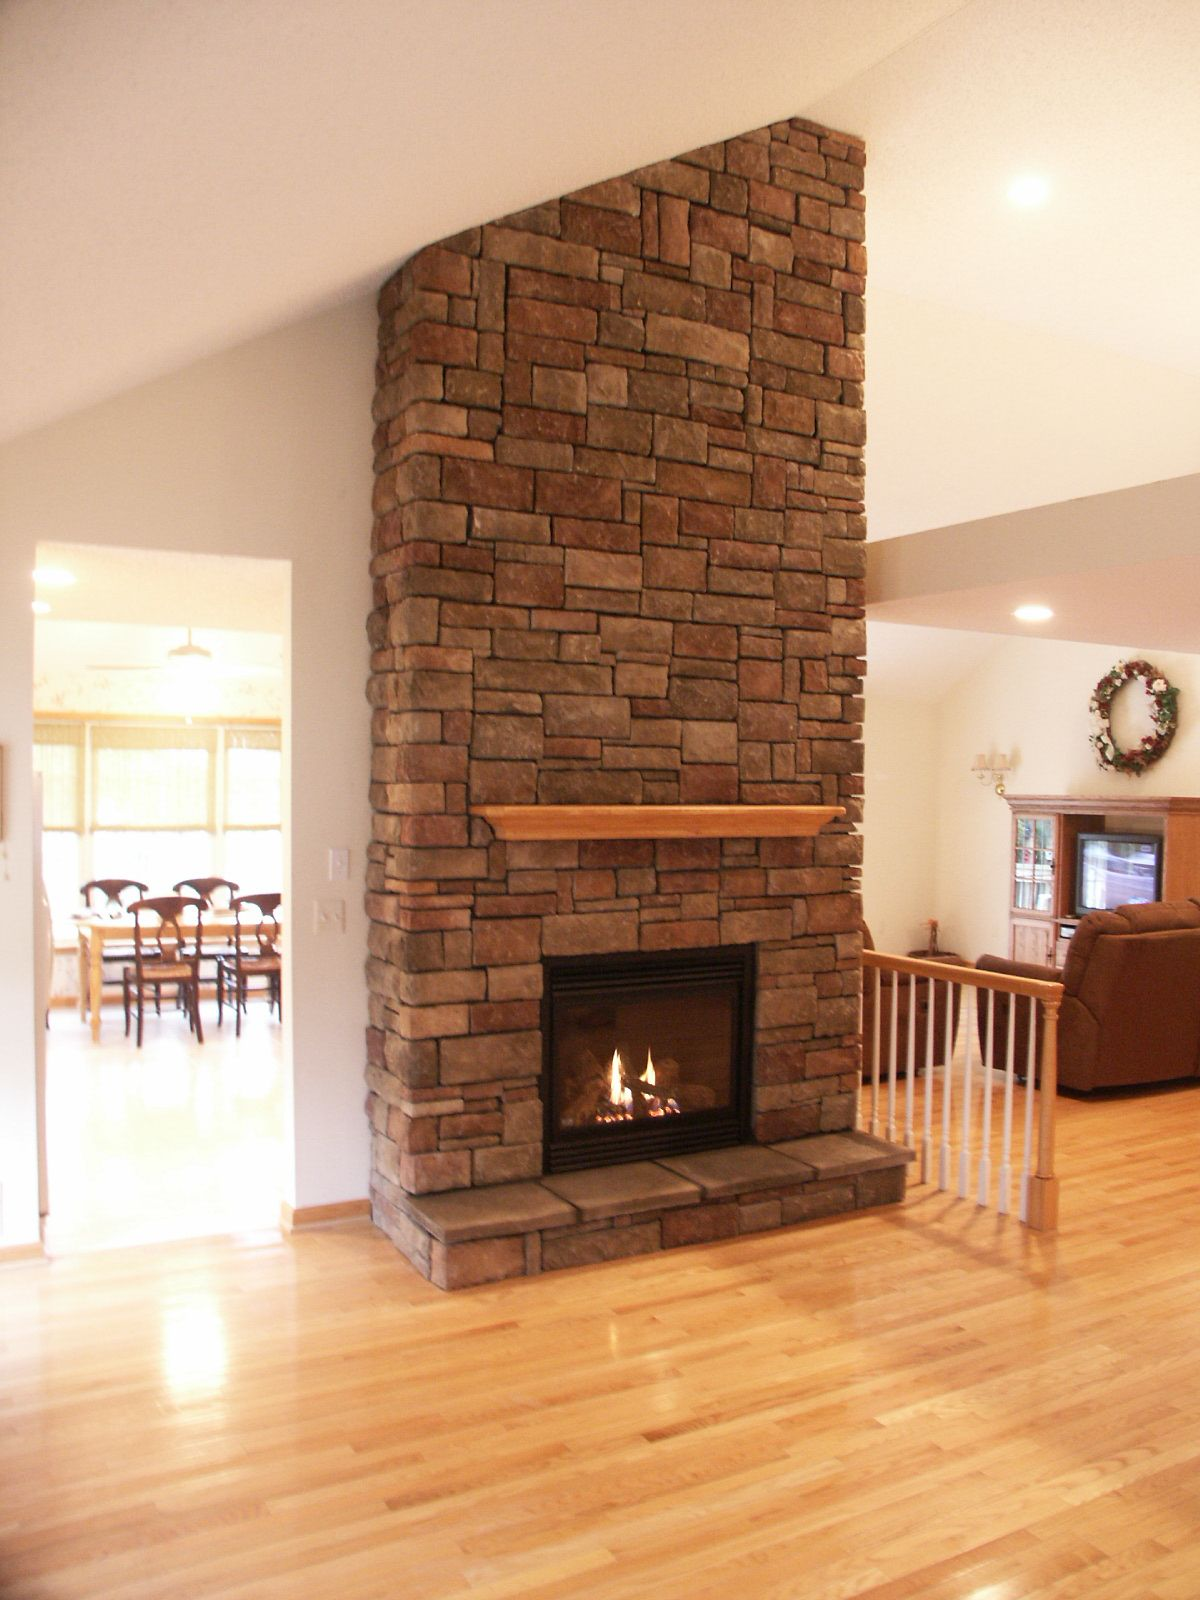 Mantel Kits For Brick Fireplace Interior Design A New Gas Beautiful Fireplaces Stone